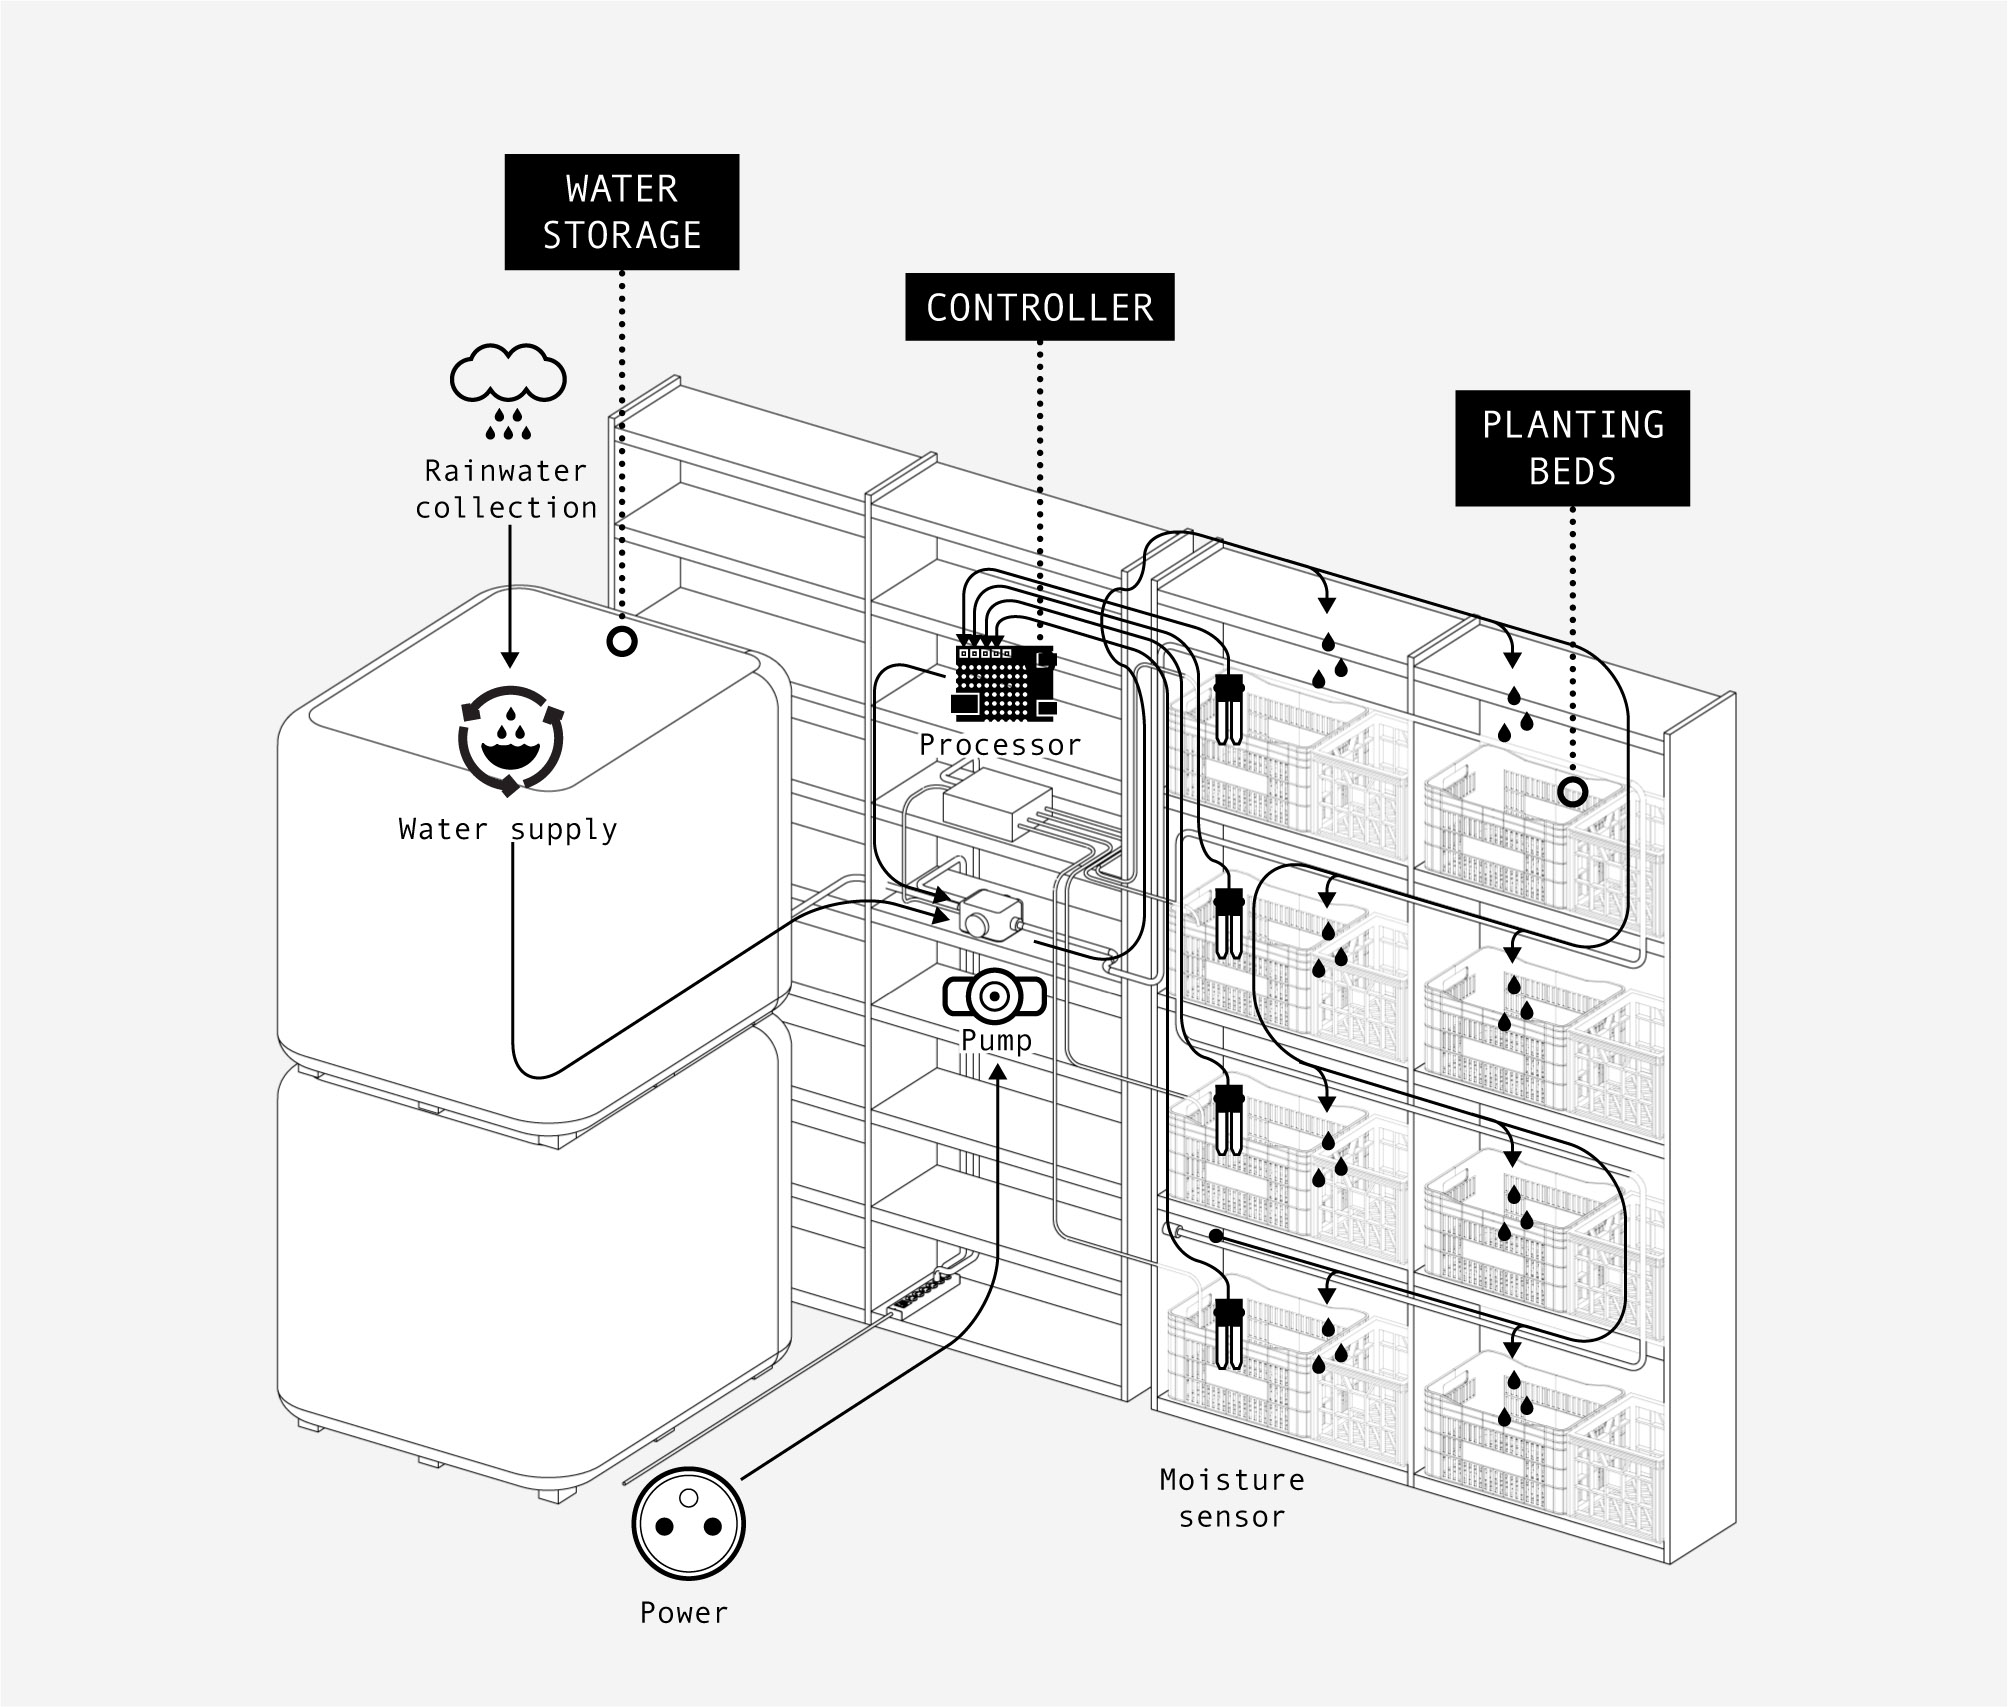 smart irrigation r urban english Battery Charger Schematic Diagram the smart irrigation system is operated by a network of microprocessors which think and decide then the plants need to be watered according to